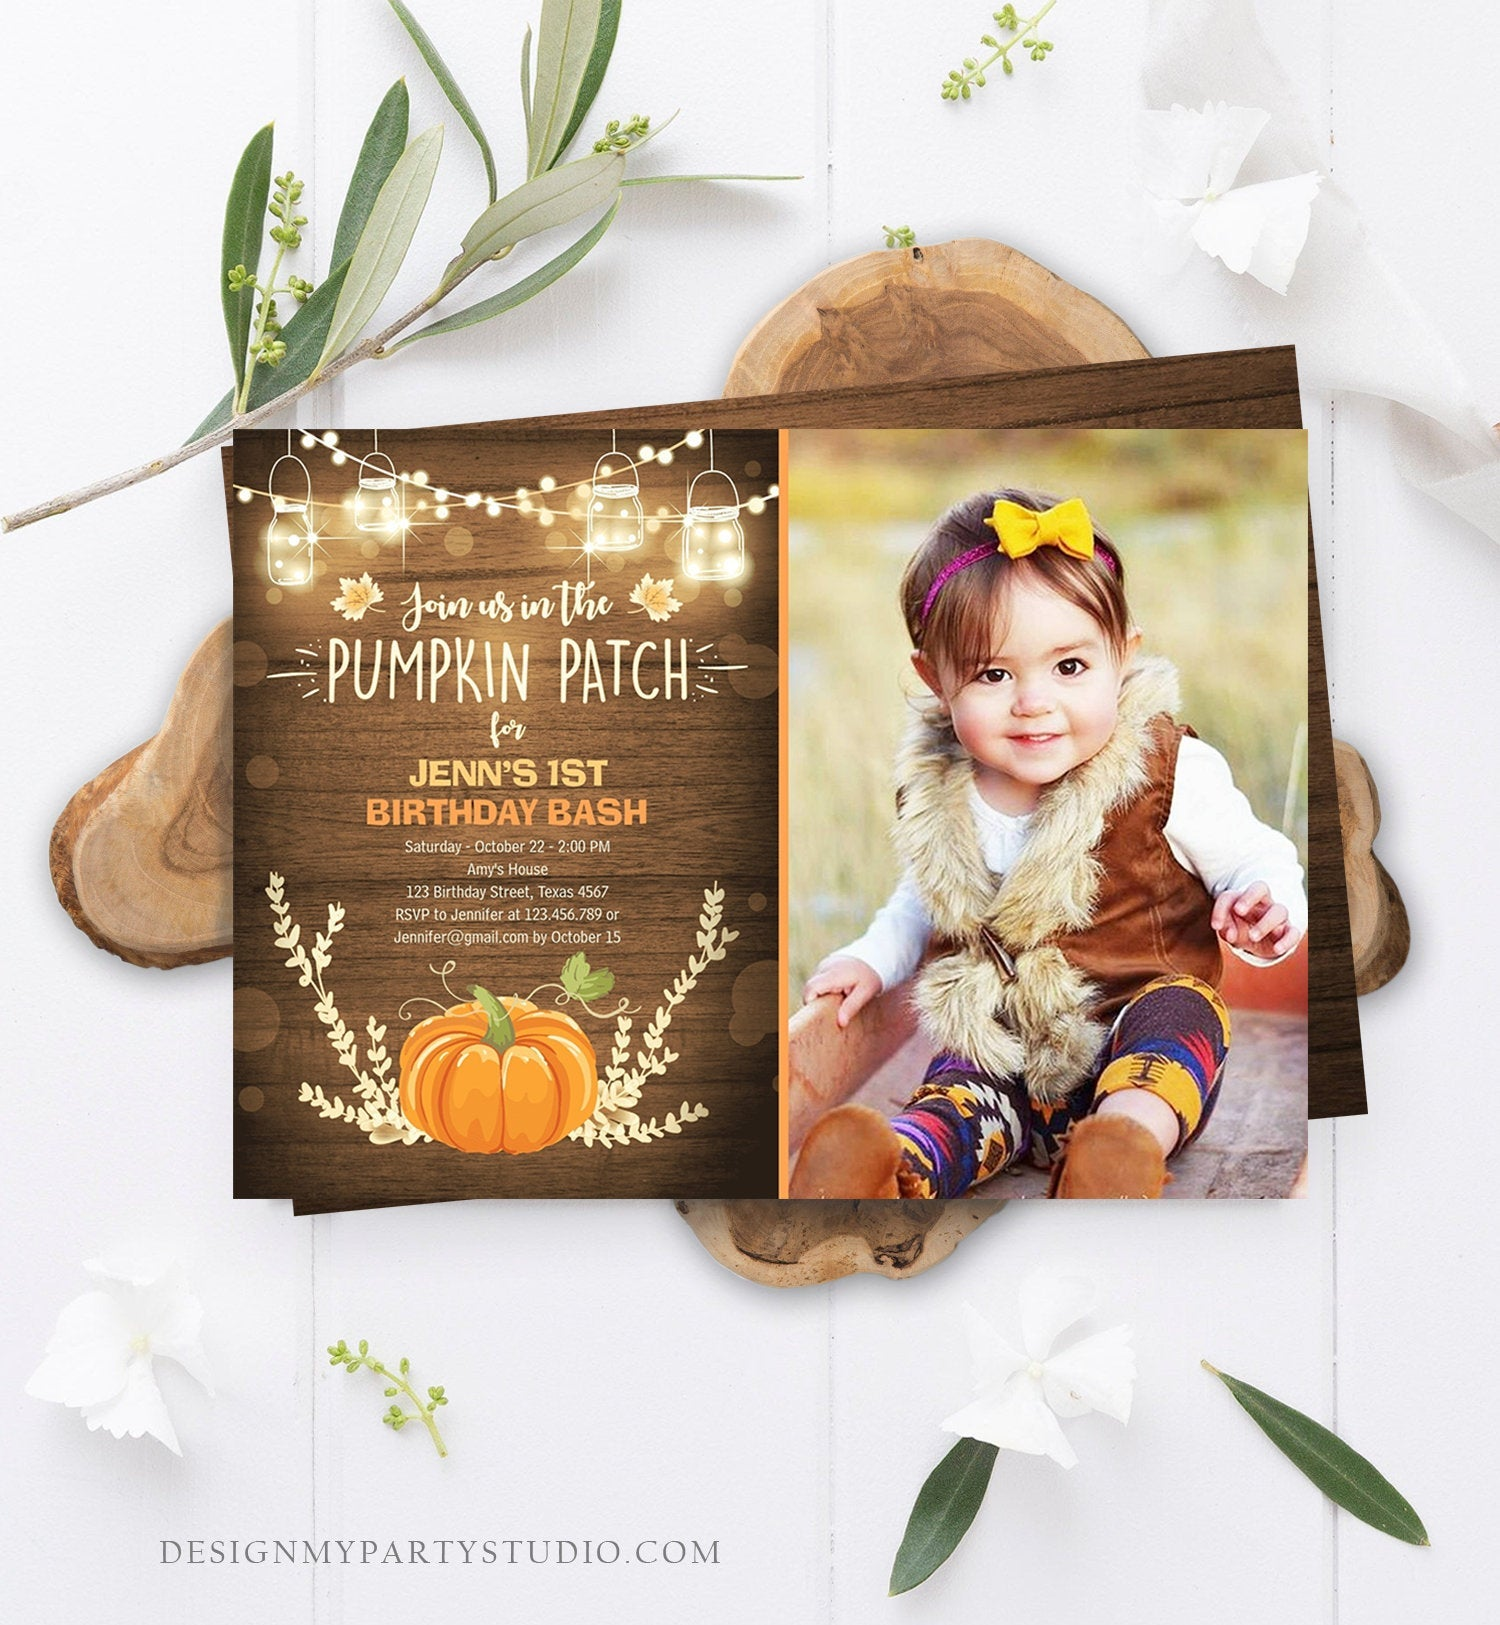 Editable Little Pumpkin Birthday Invitation Orange Pumpkin Patch Autumn Fall Rustic Boy Girl First Birthday Corjl Invitation Printable 0015